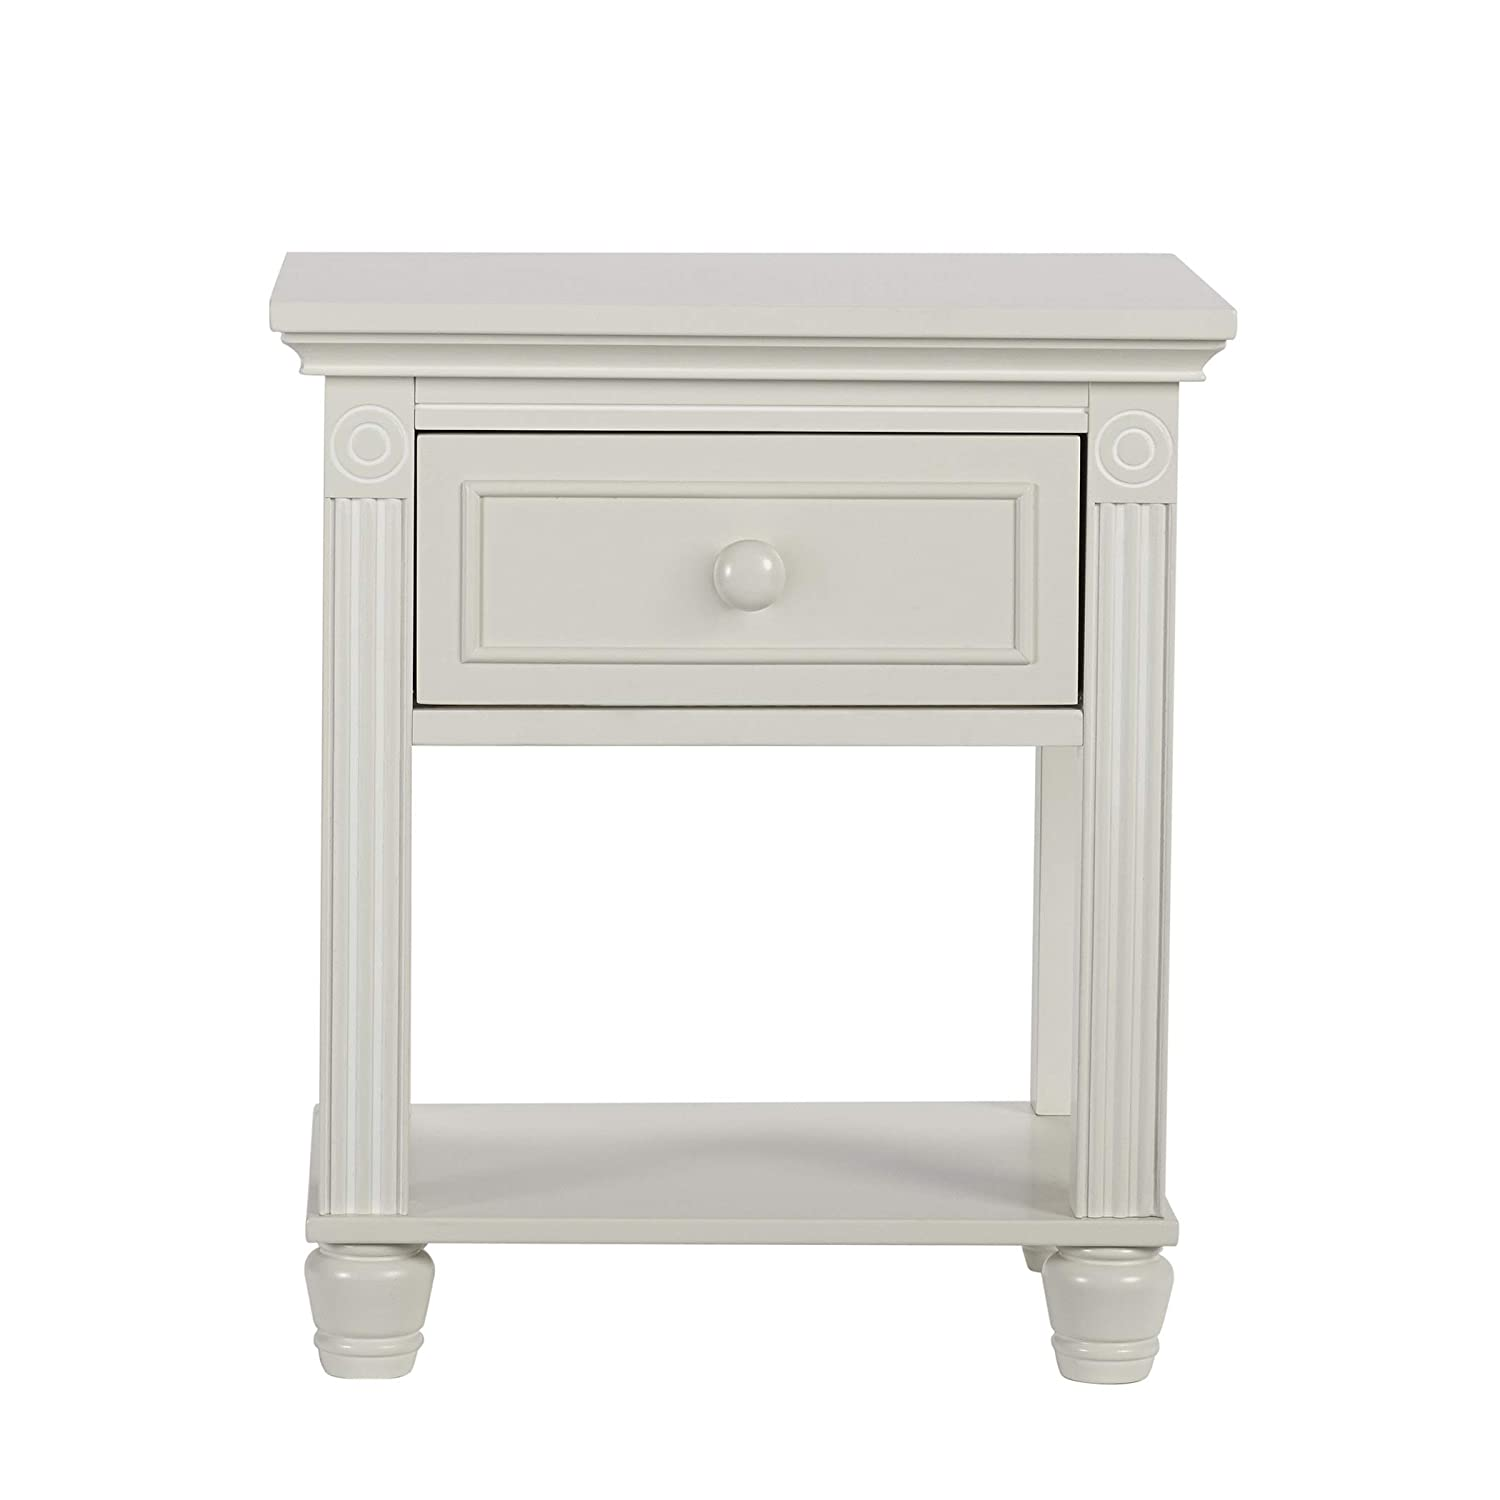 Baby Cache Montana Collection Natural Hardwood End Table Combo With Lasting Quality Design & Kilndried Hand Crafted Construction, Glazed White, Nightstand, 31 Pounds